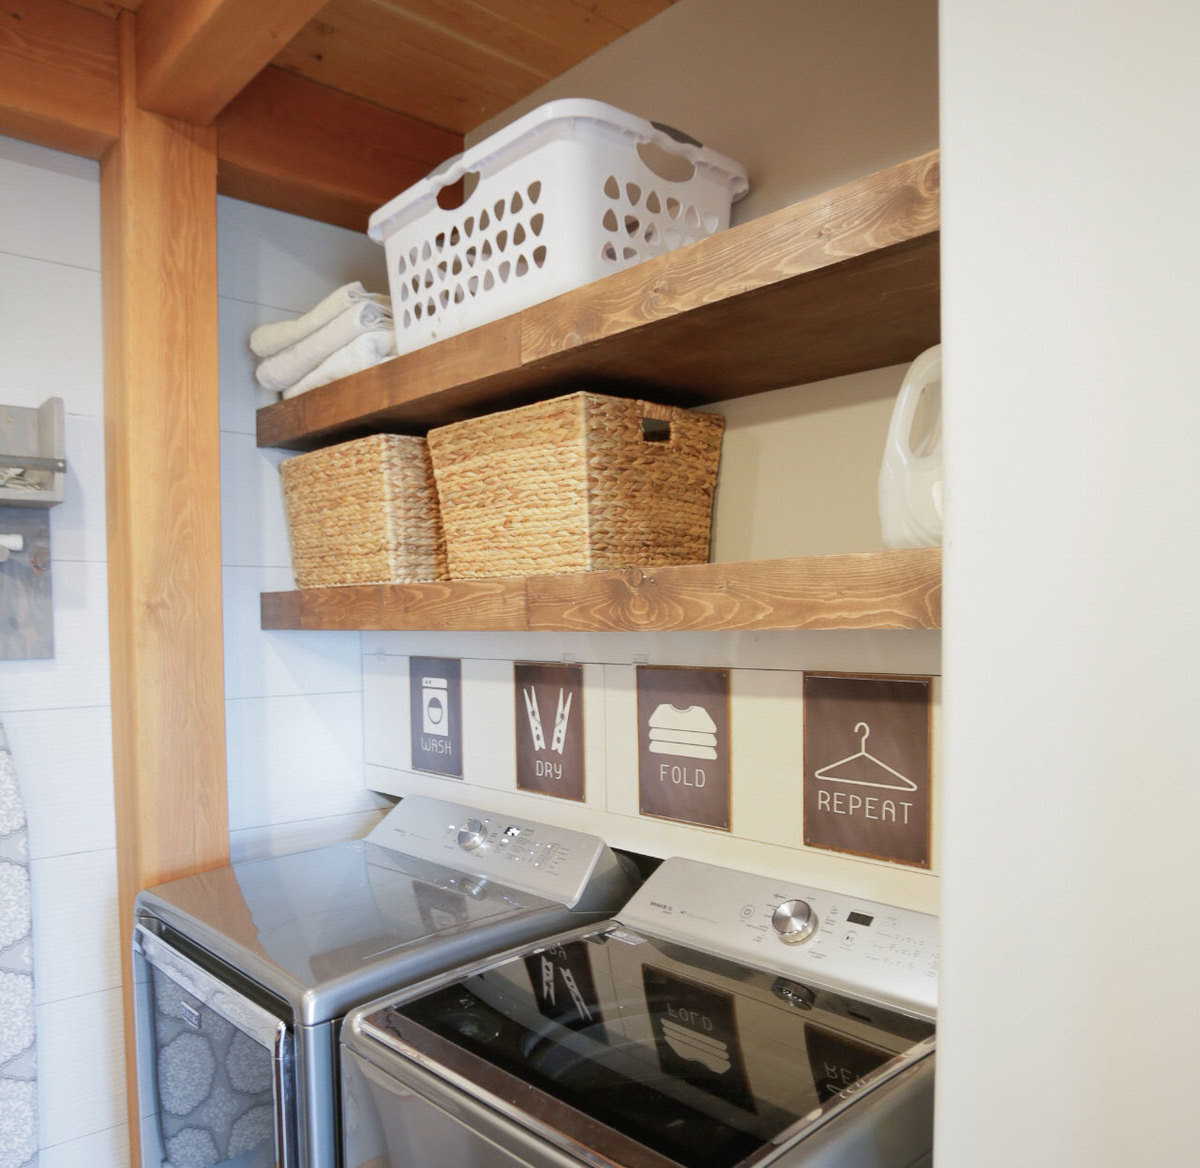 Floating Shelves Pull Out Drying Racks and Hanging Rods  Ana White